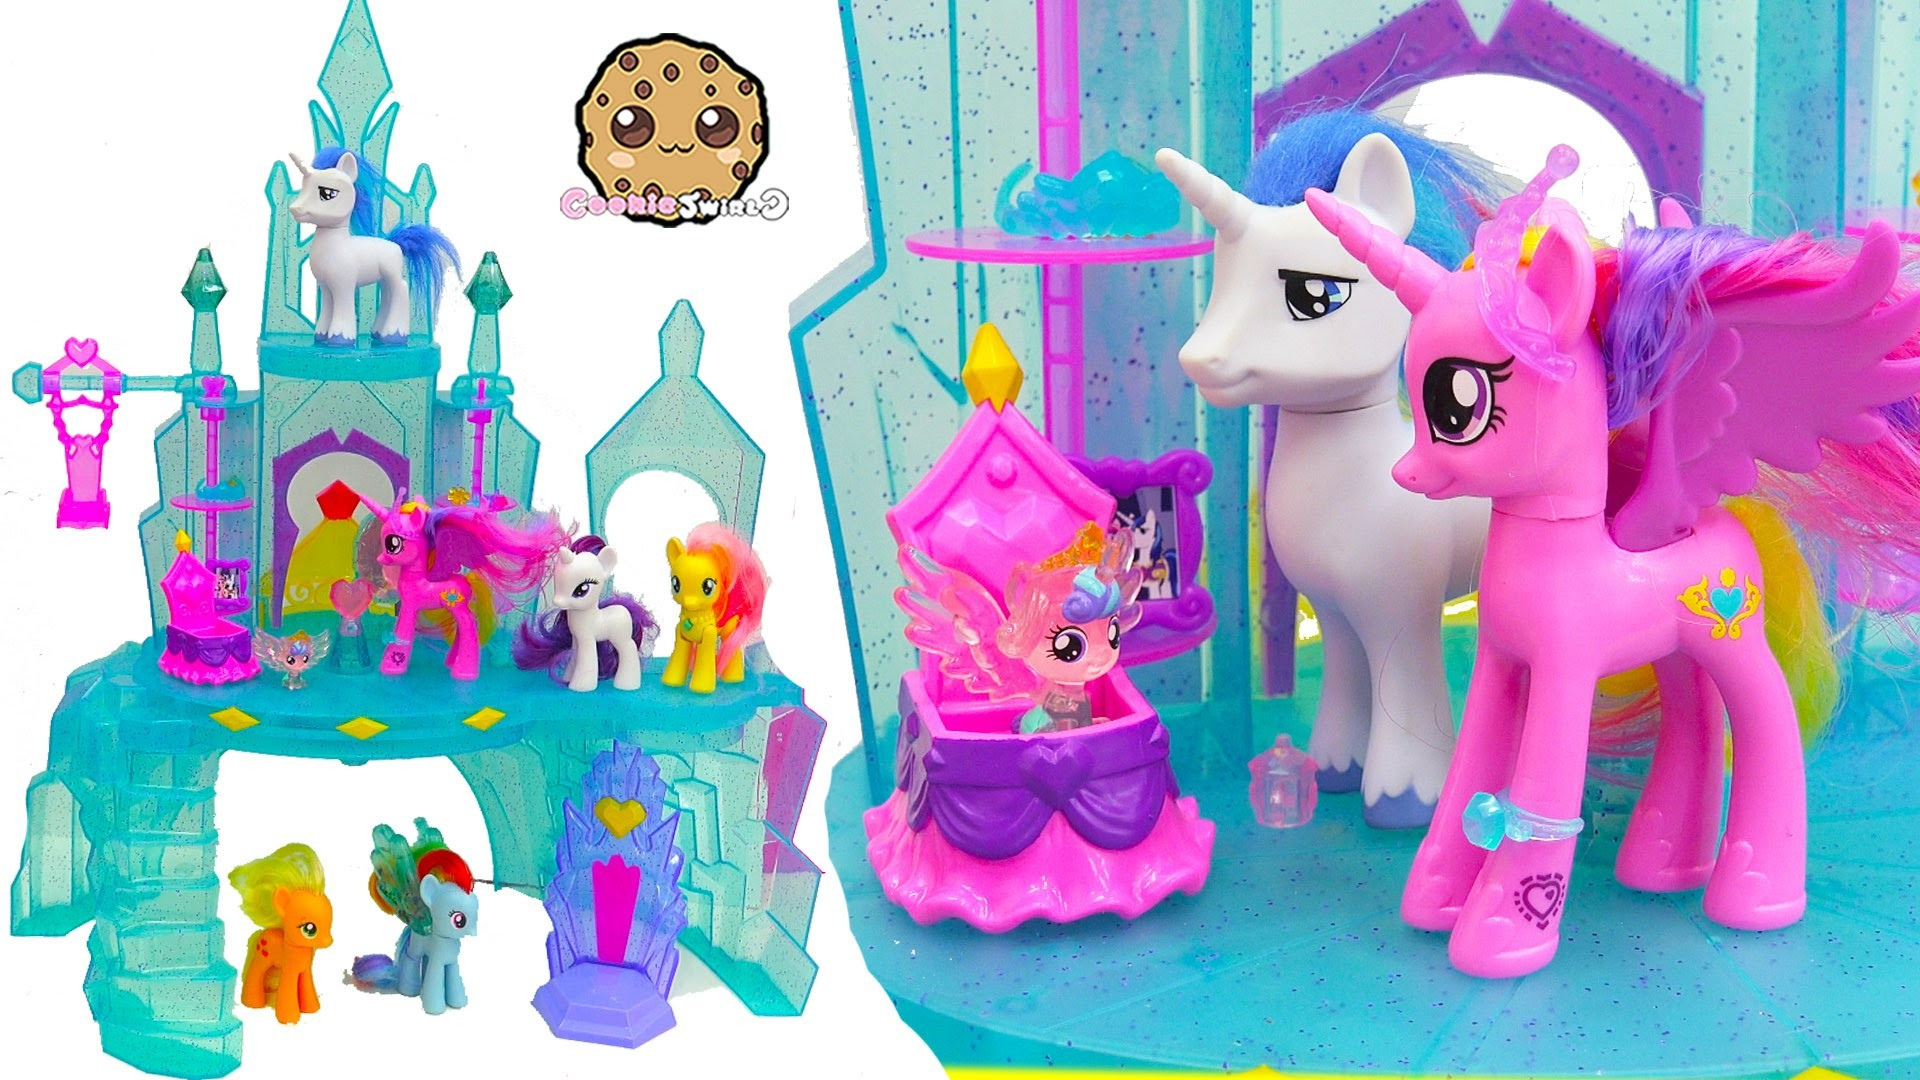 1920x1080 My Little Pony Crystal Empire Castle with Baby Flurry Heart, Princess  Cadance, Shining Armor - YouTube